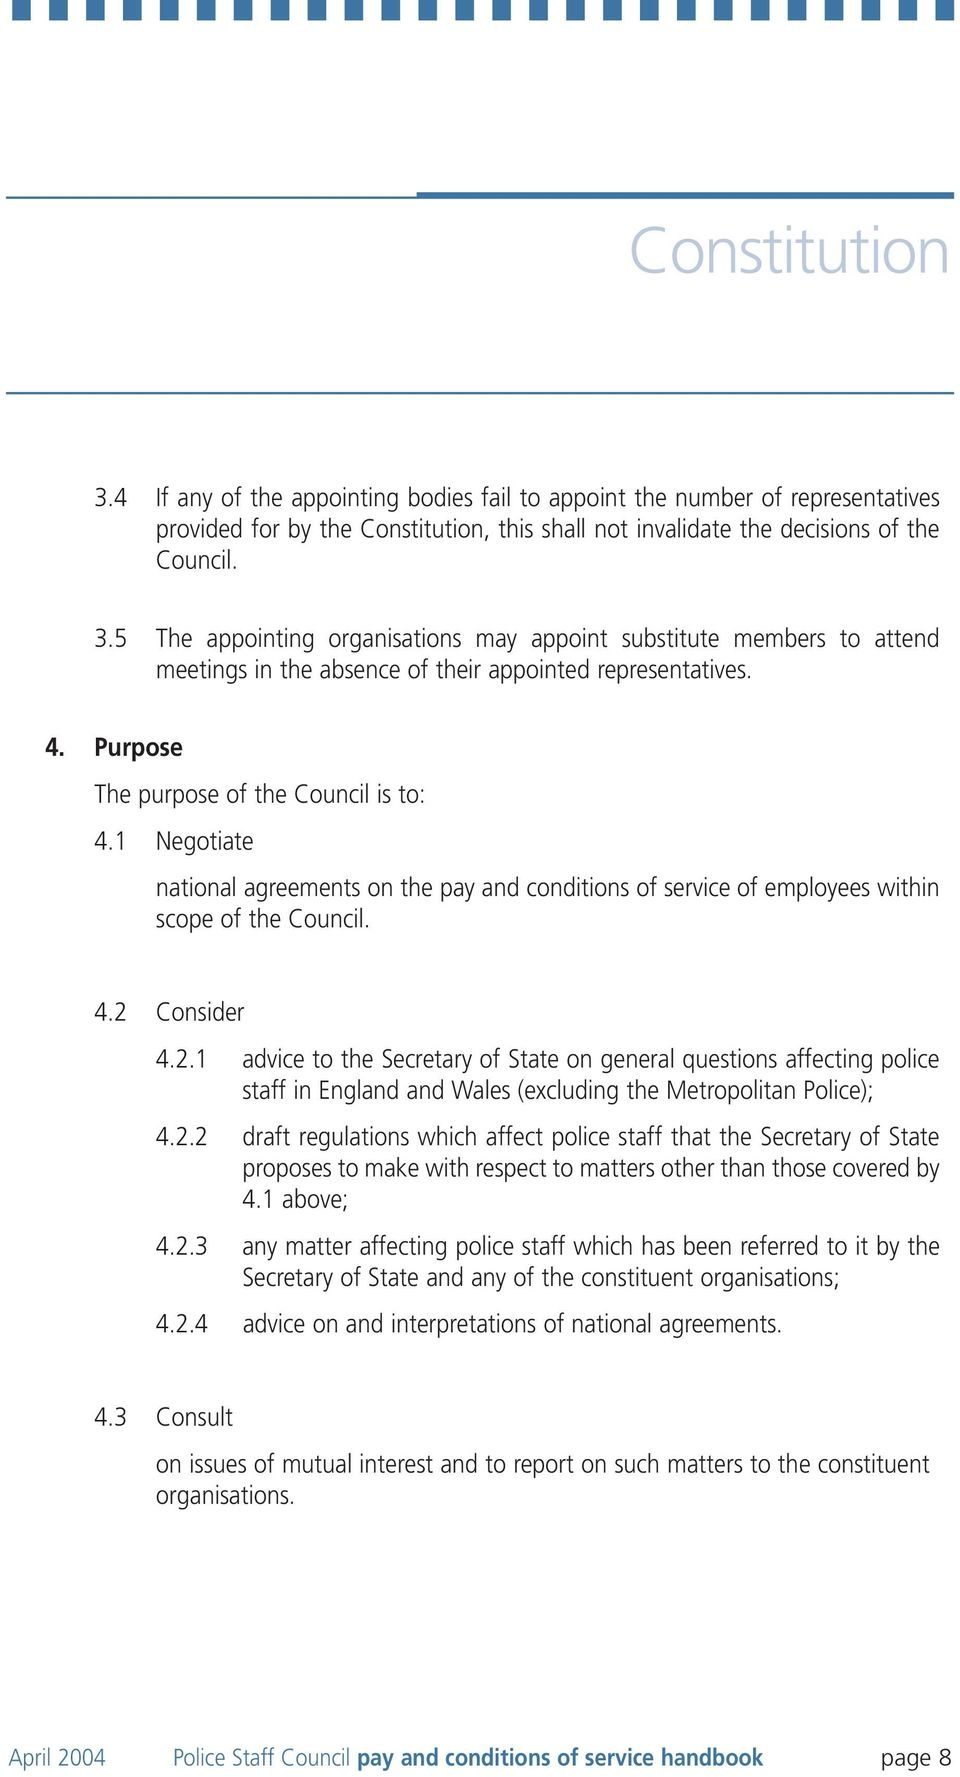 Consider 4.2.1 advice to the Secretary of State on general questions affecting police staff in England and Wales (excluding the Metropolitan Police); 4.2.2 draft regulations which affect police staff that the Secretary of State proposes to make with respect to matters other than those covered by 4.